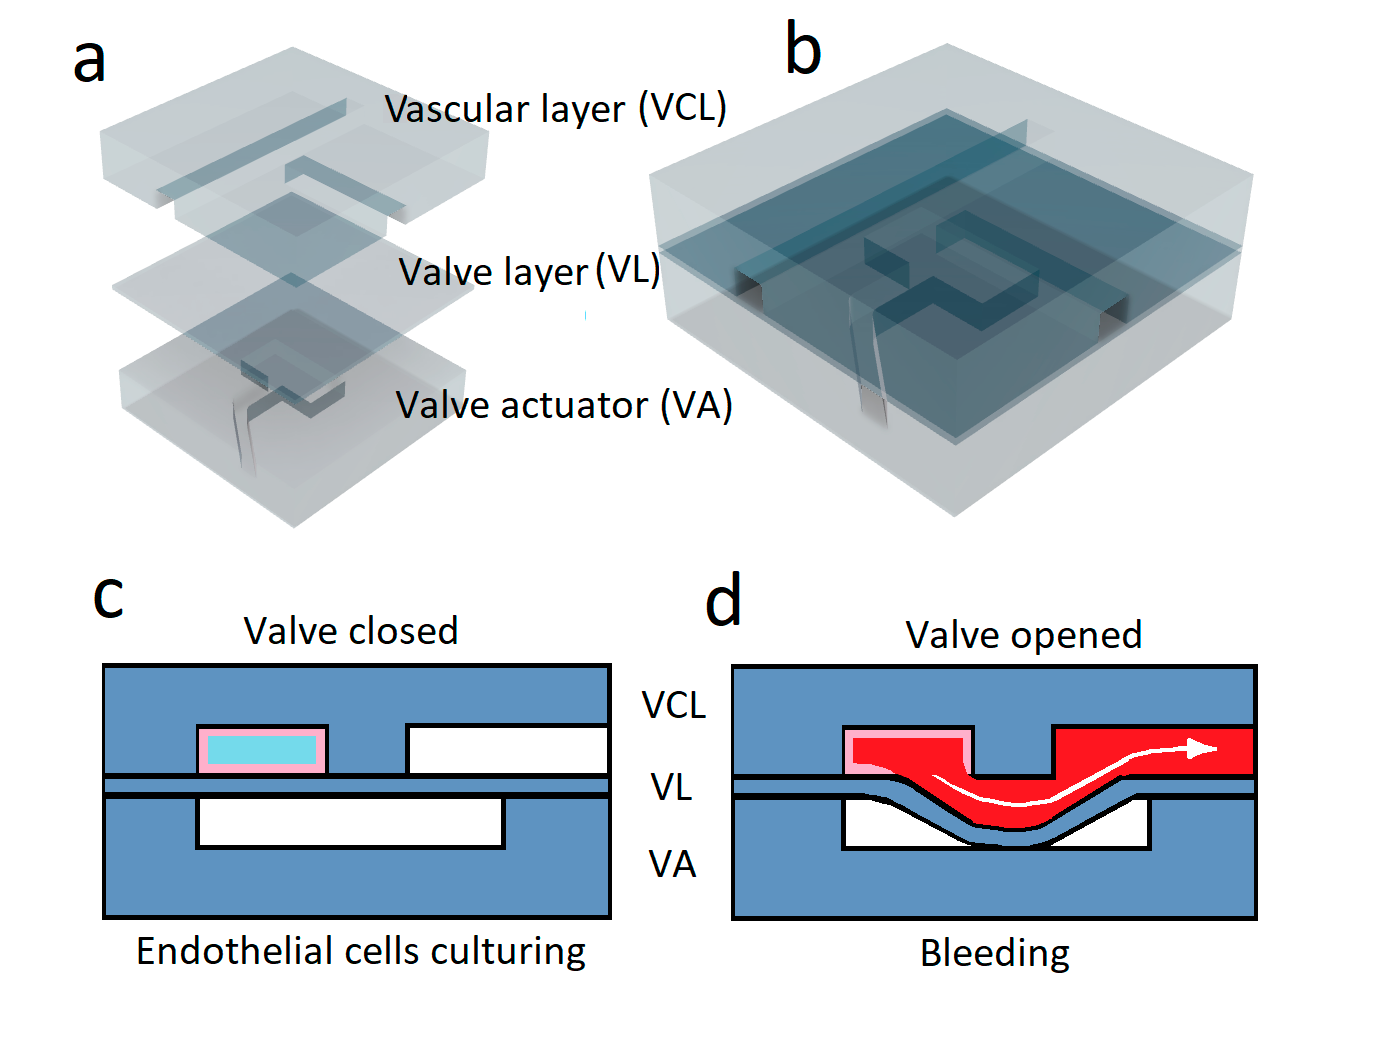 Multilayer microfluidic model of bleeding. (a) Three PDMS-layers: 1-vascular layer, consisting of a vascular channel and a bleeding channel, 2-PDMS valve layer, 3-layer that deforms the valve due to pressure reduction; (b) The schematics of the assembled device; c) General scheme of the system: first, endothelial cells (pink) are cultured to form a monolayer in the vascular channel (blue). d) Further, whole blood (red) is perfused and the valve layer is displaced by decrease of the pressure in the valve actuator chamber (white). Blood, while the valve is in the open position, flows through the vascular channel, as well as through the newly created channel, simulating bleeding due to penetrating damage. Adapted from [33].